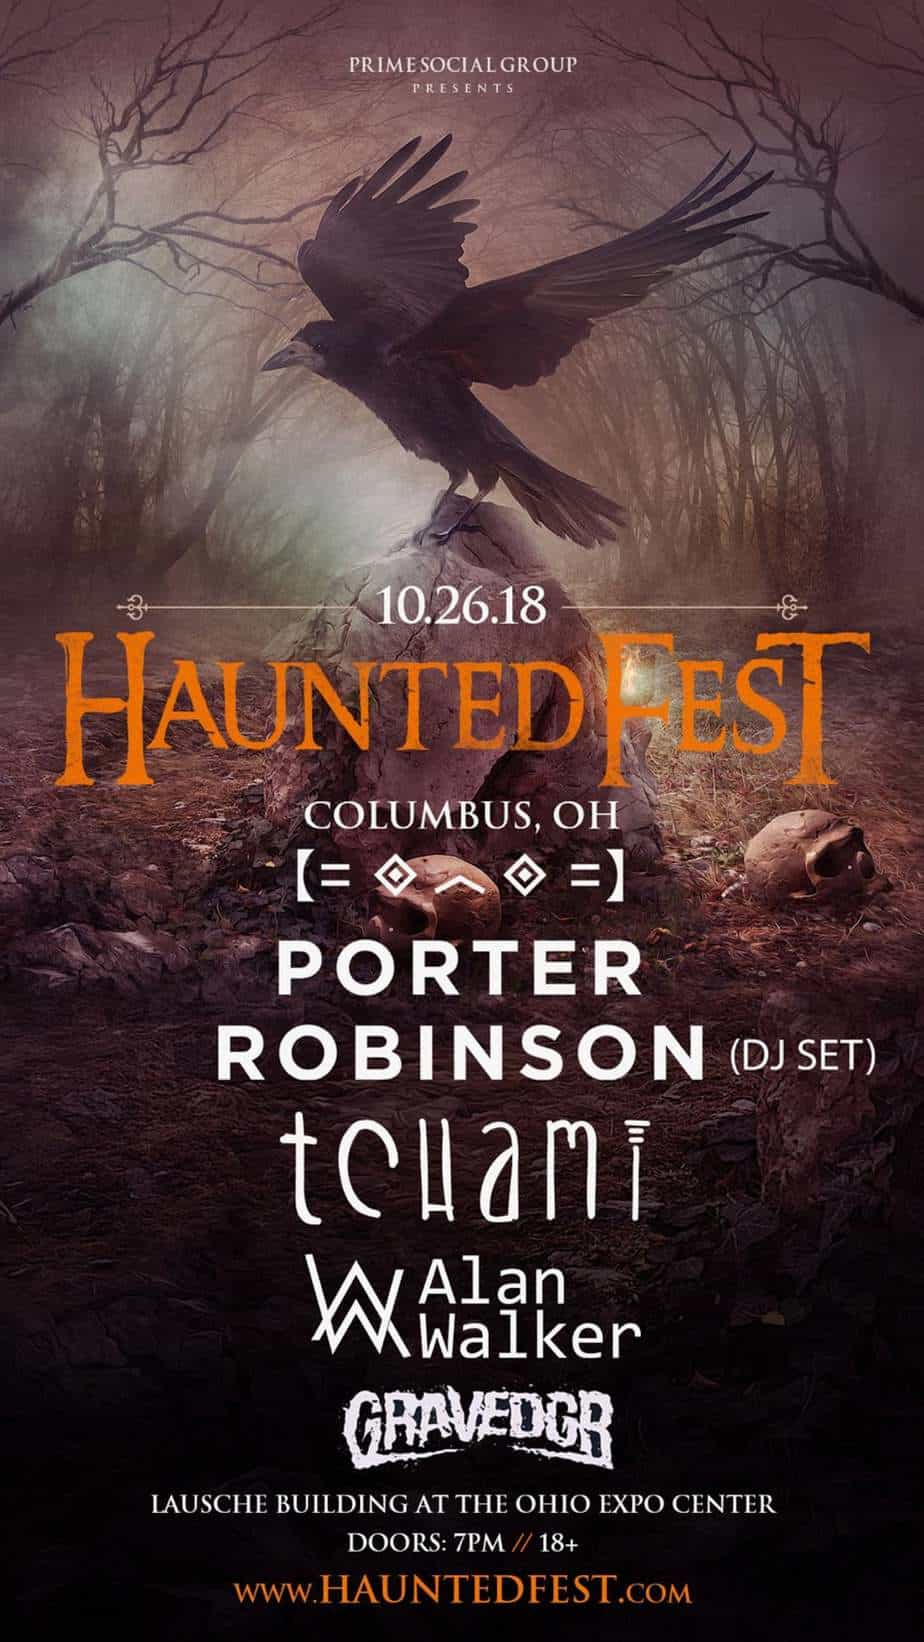 Photo of Porter Robinson, Tchami, and Alan Walker will headline Haunted Fest 2018